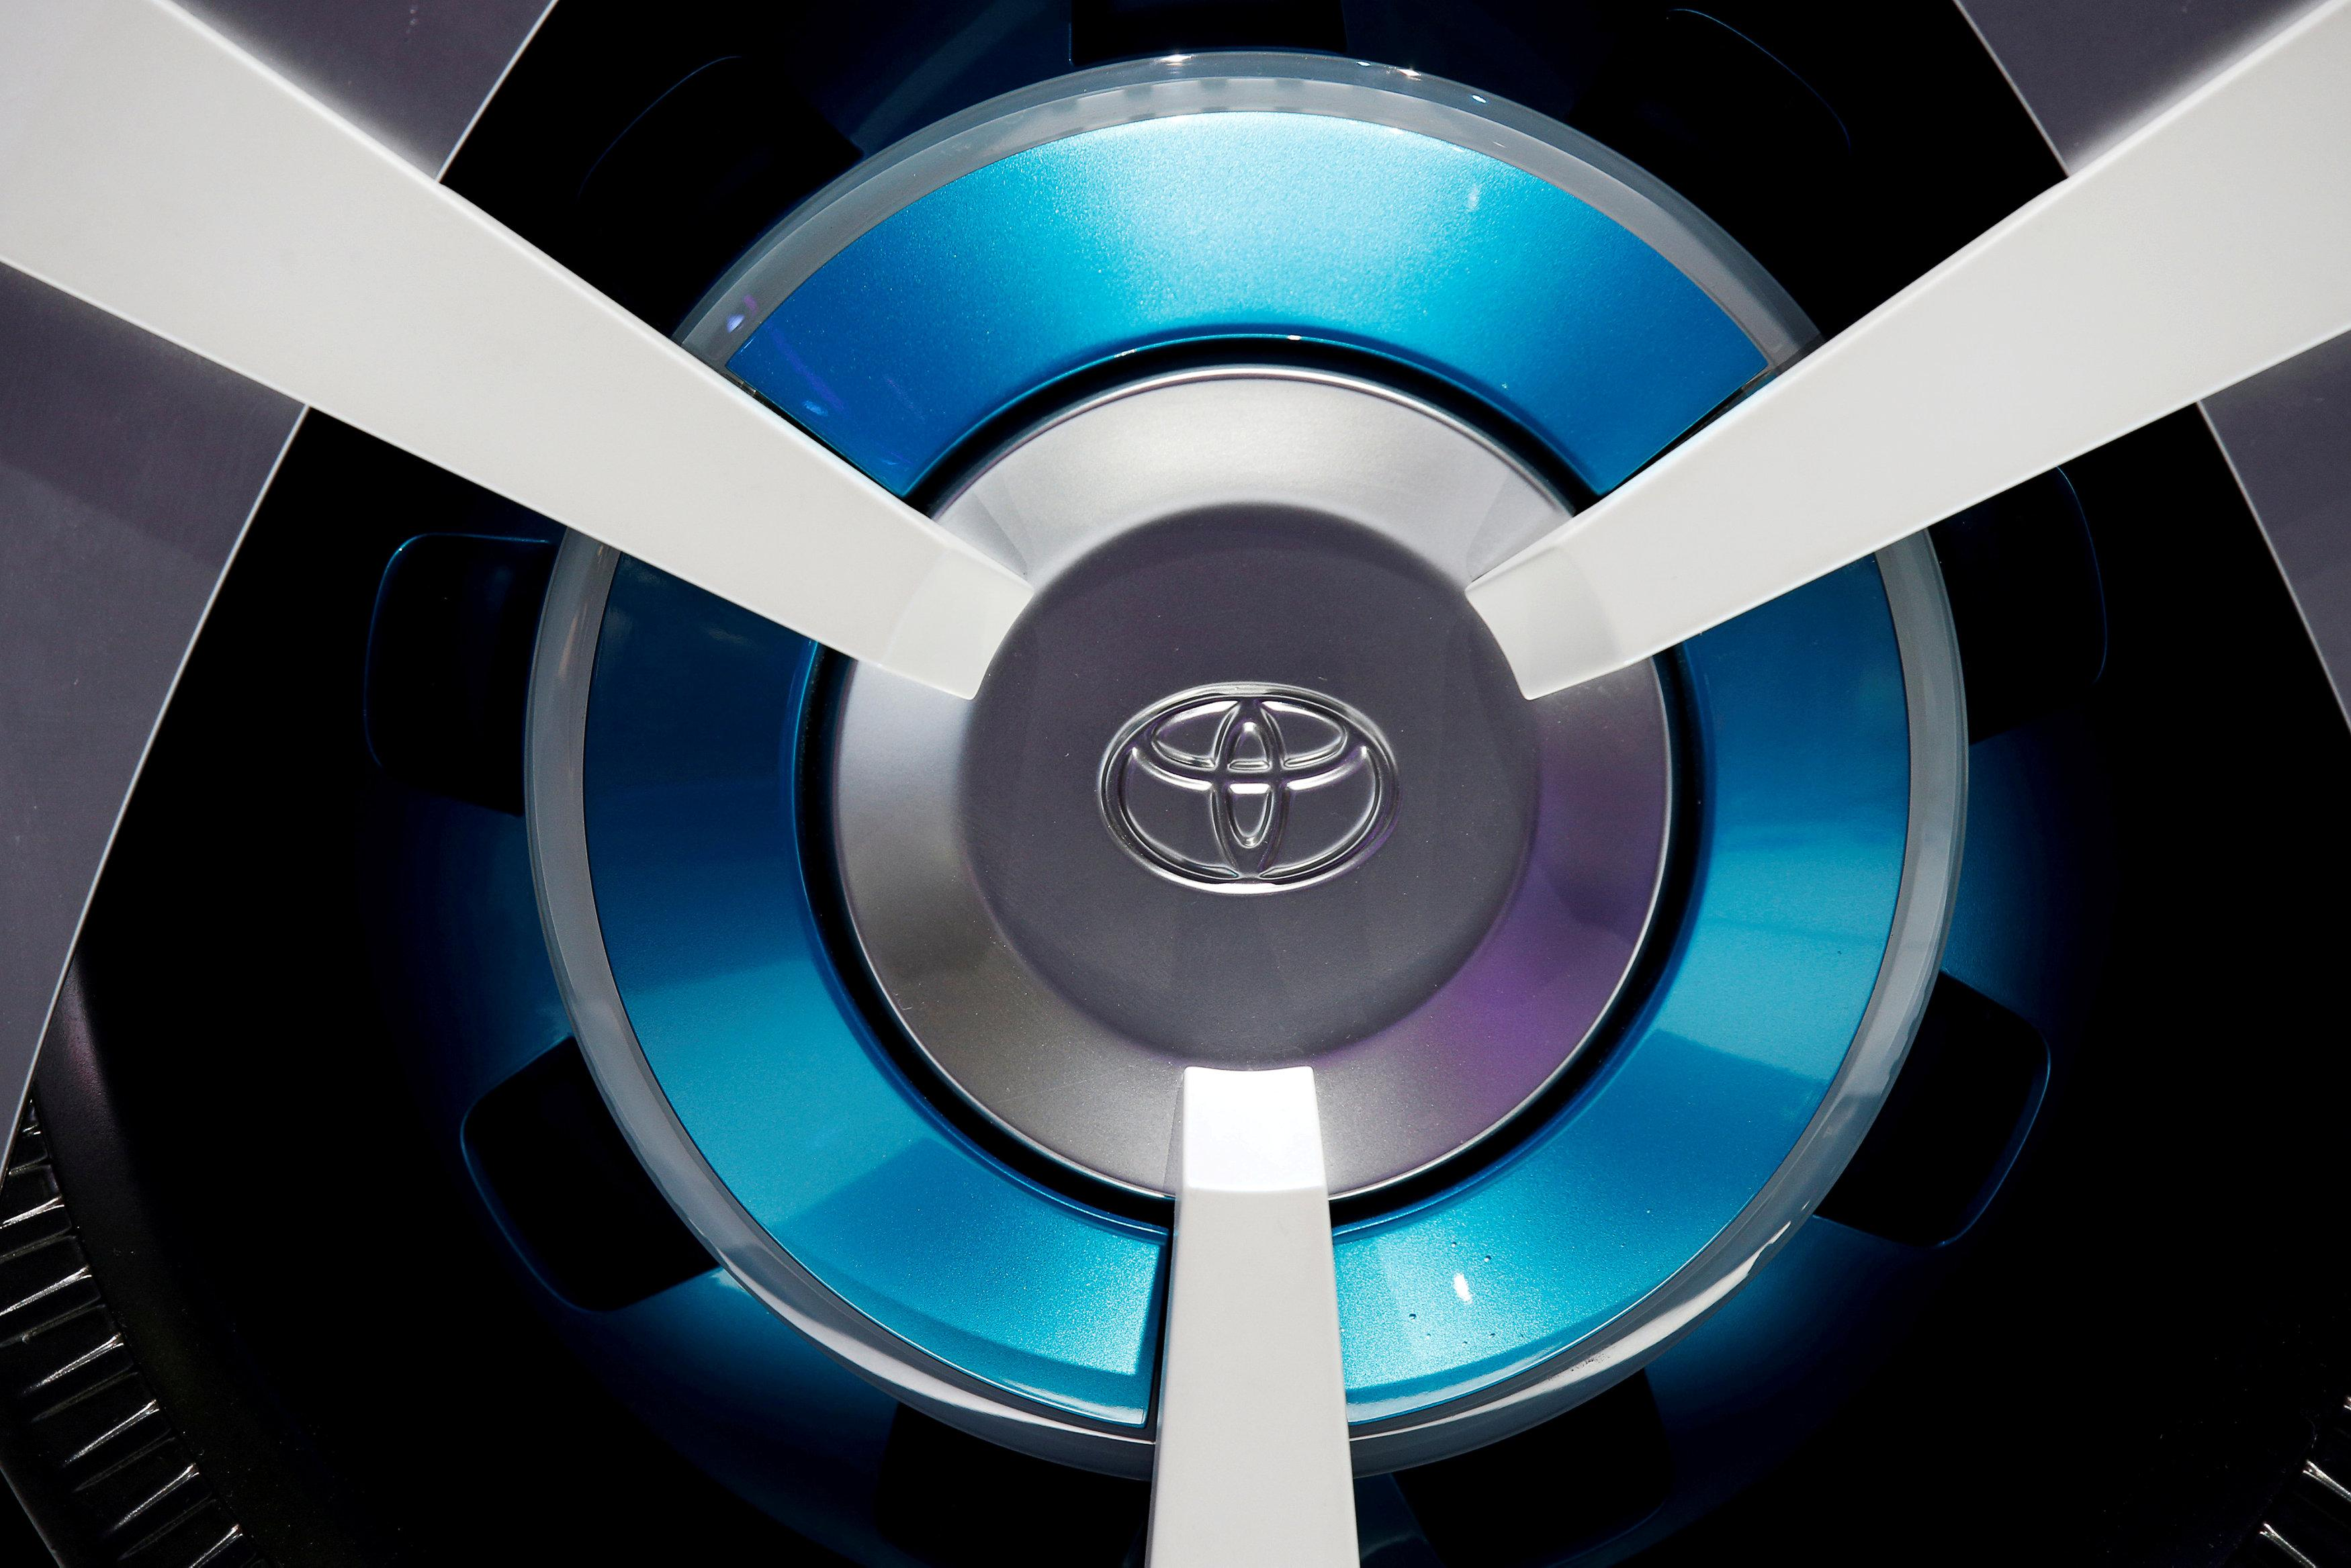 View of a Toyota logo on a wheel at the Mondial de l'Automobile, Paris auto show, during media day in Paris, France, September 30, 2016. Jacky Naegelen